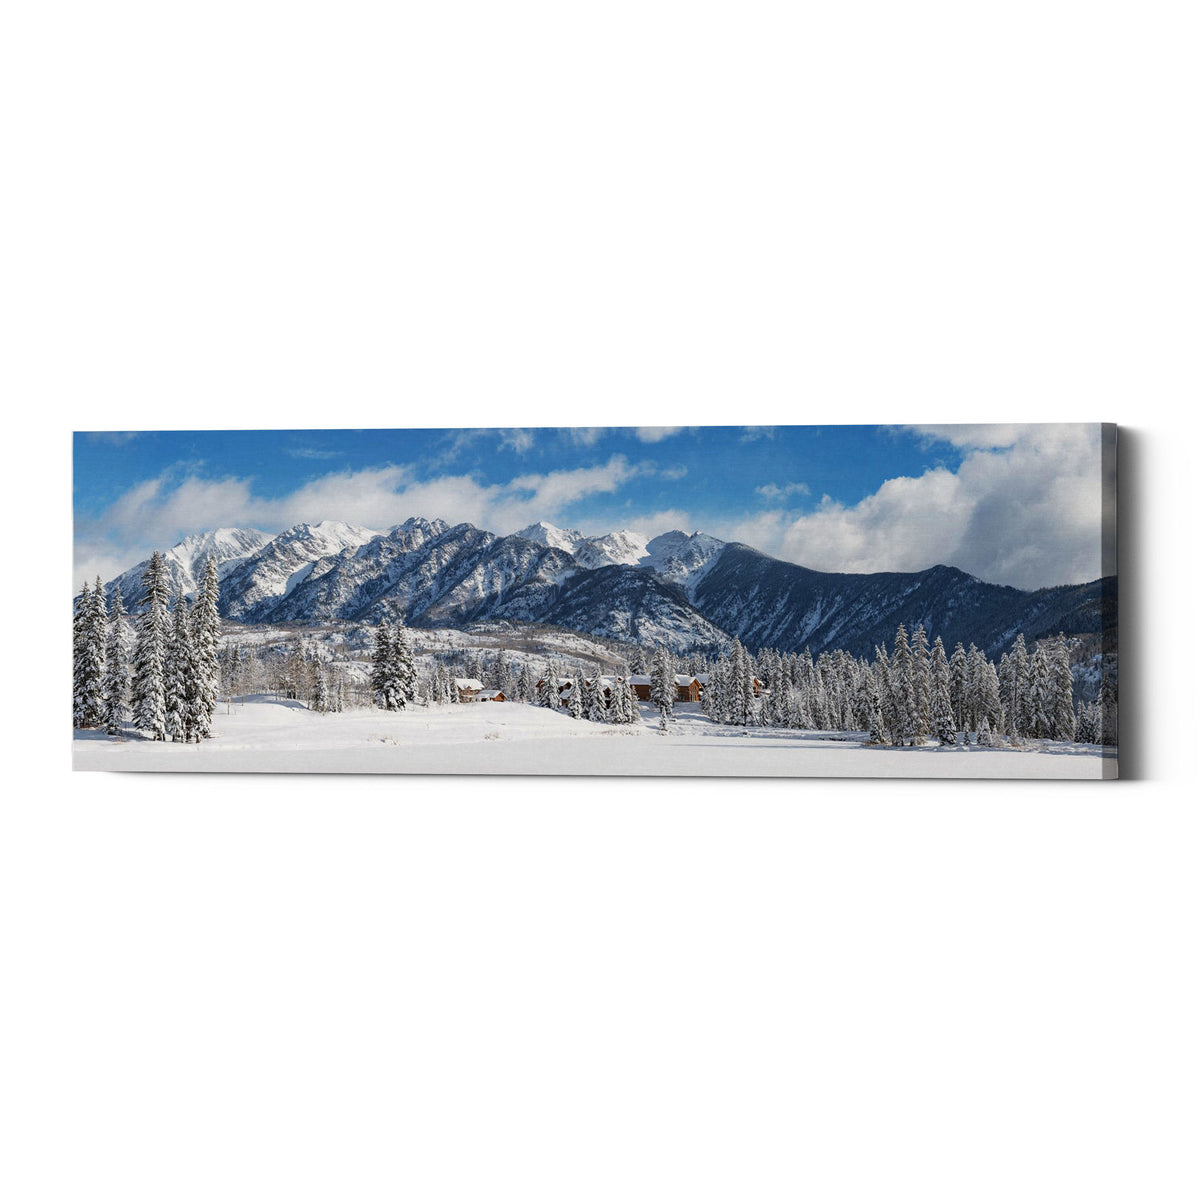 "Epic Graffiti ""Colorado Winter Wonderland"" by Darren White, Giclee Canvas Wall Art"